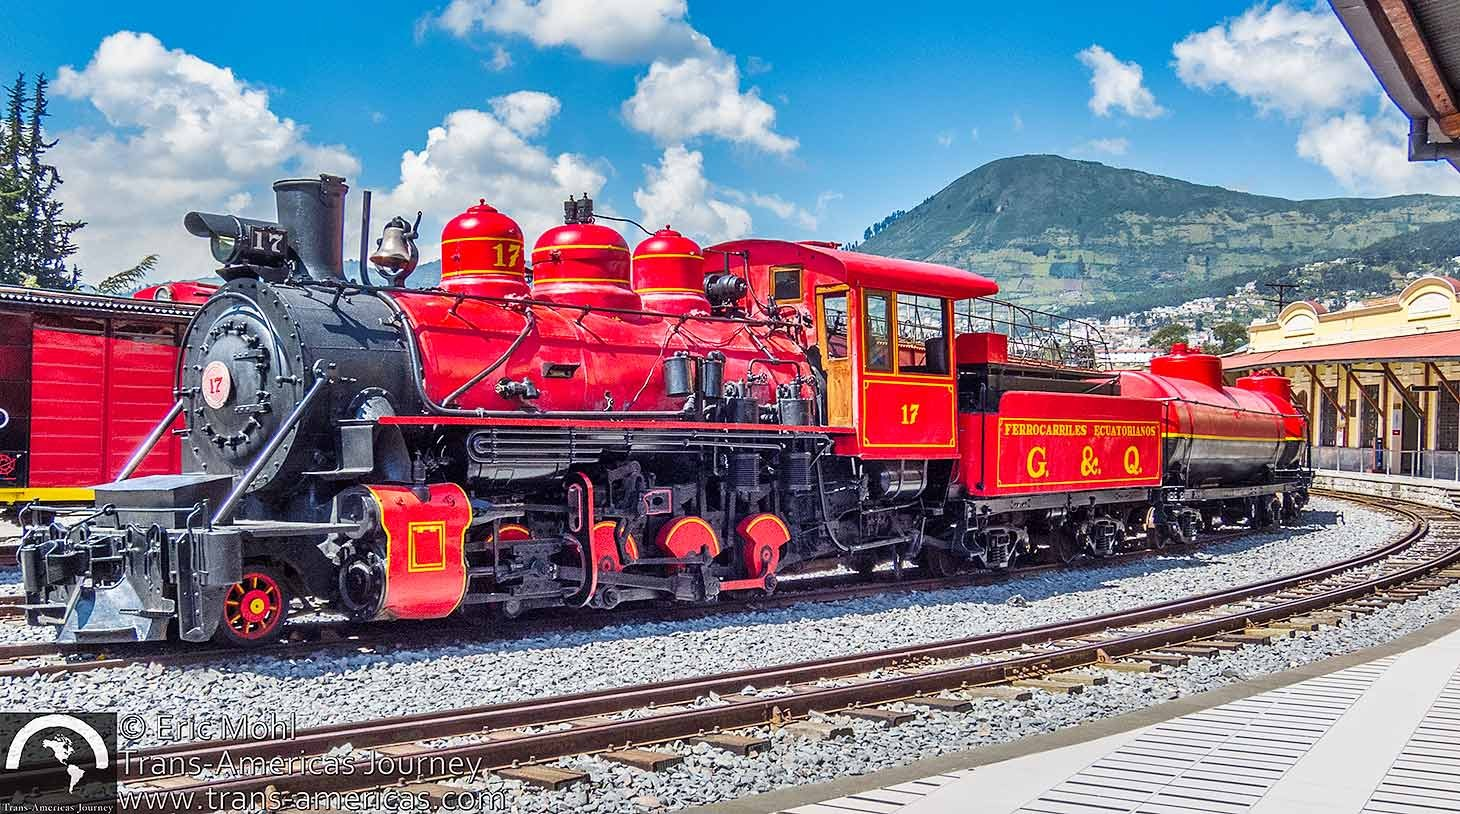 Ecuador-steam-locomotive@2x